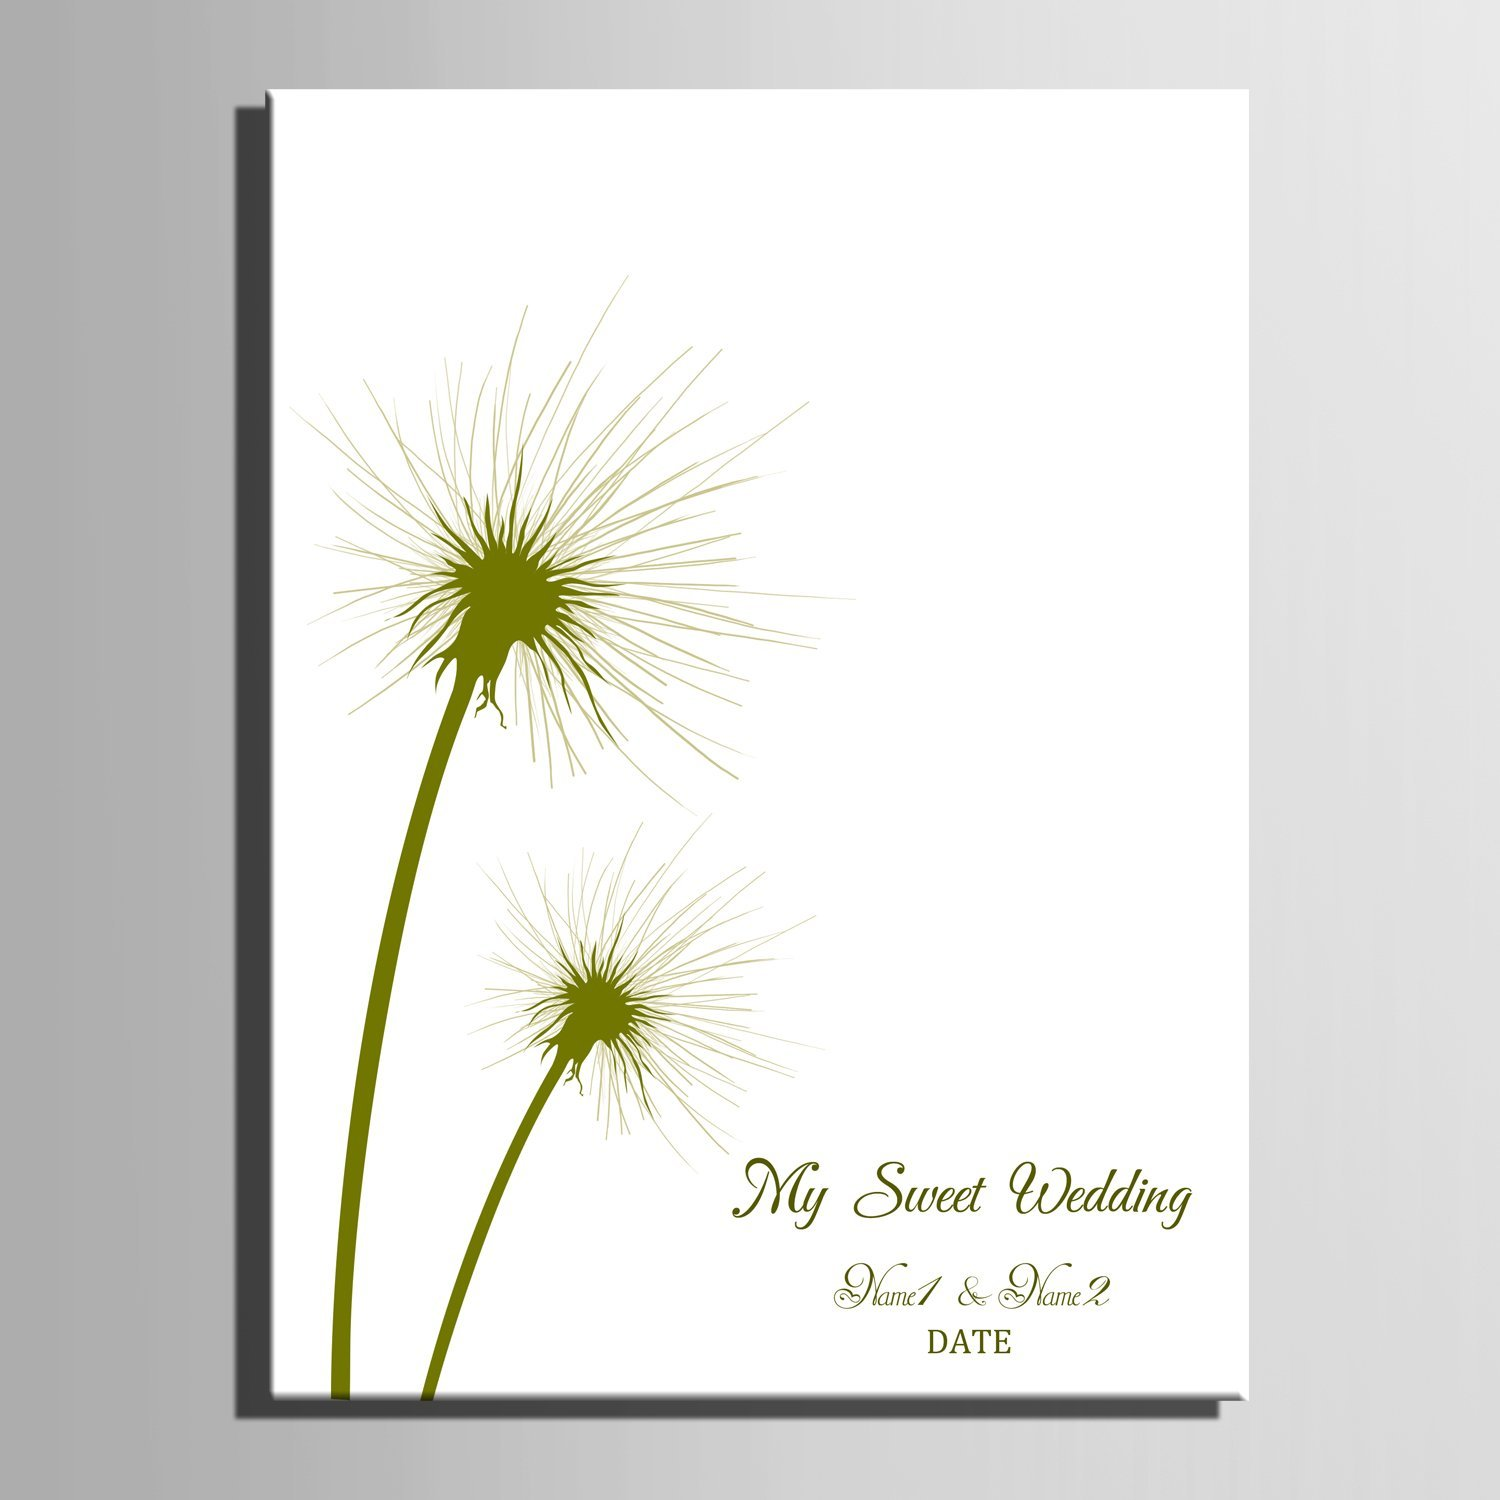 Amazoncom Fingerprint Signature Canvas Painting Green Dandelion